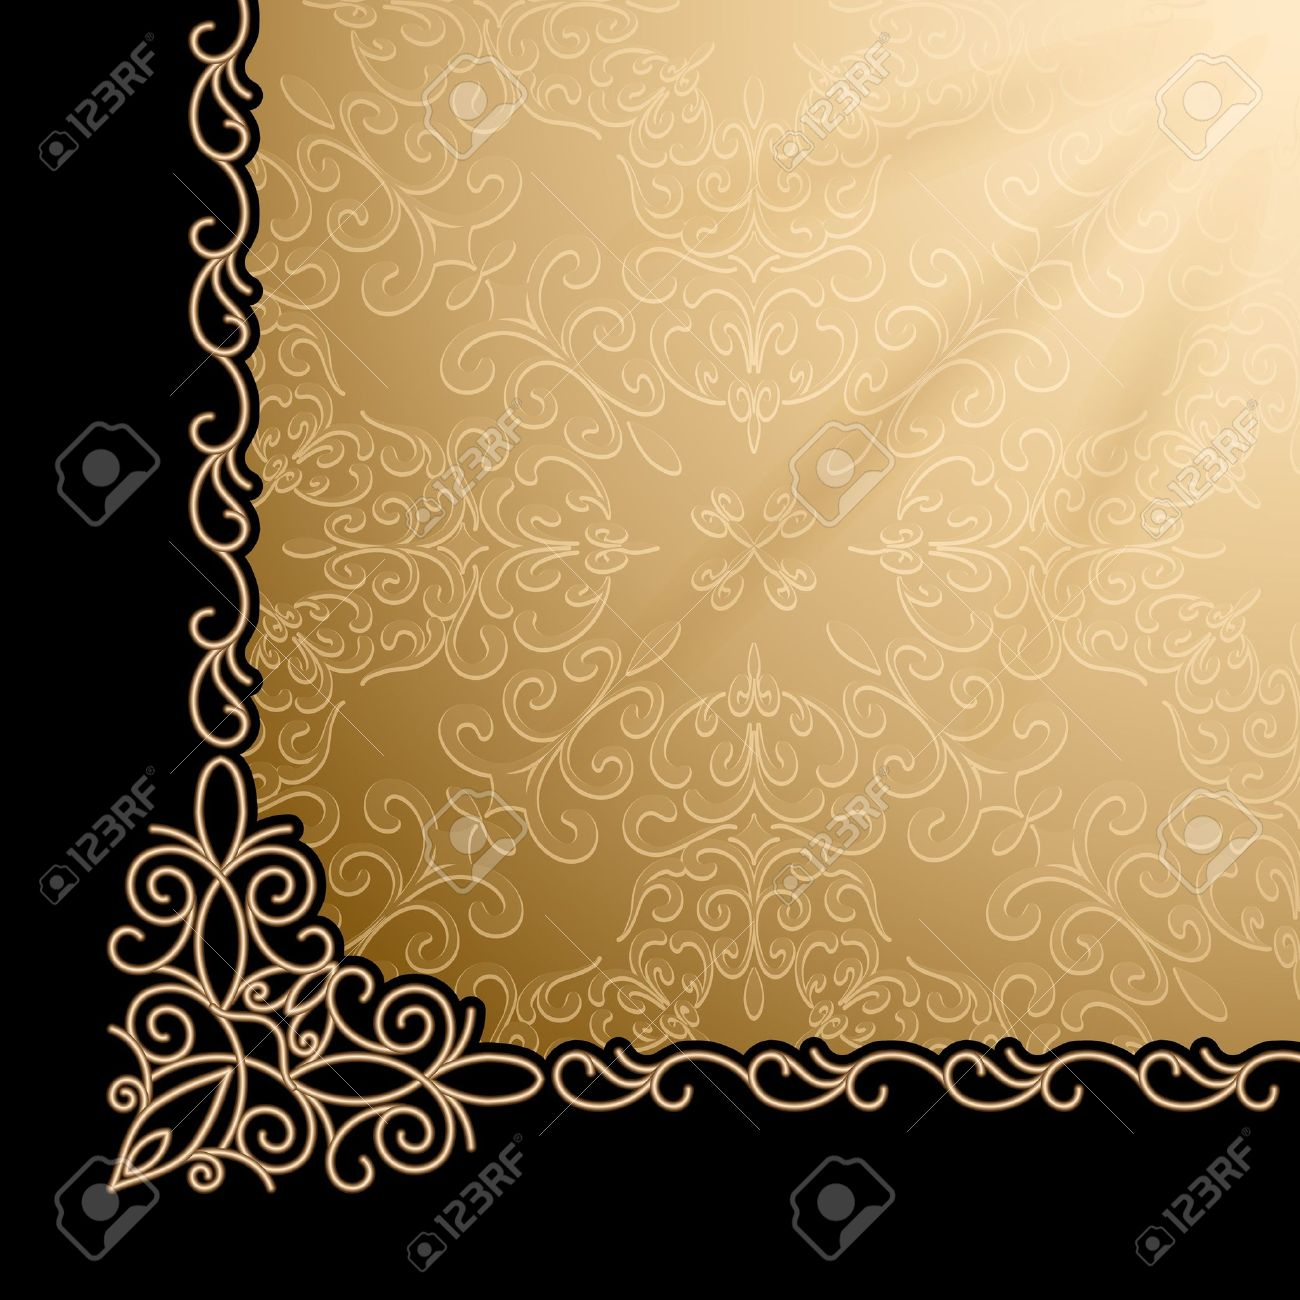 Gold page background clipart.